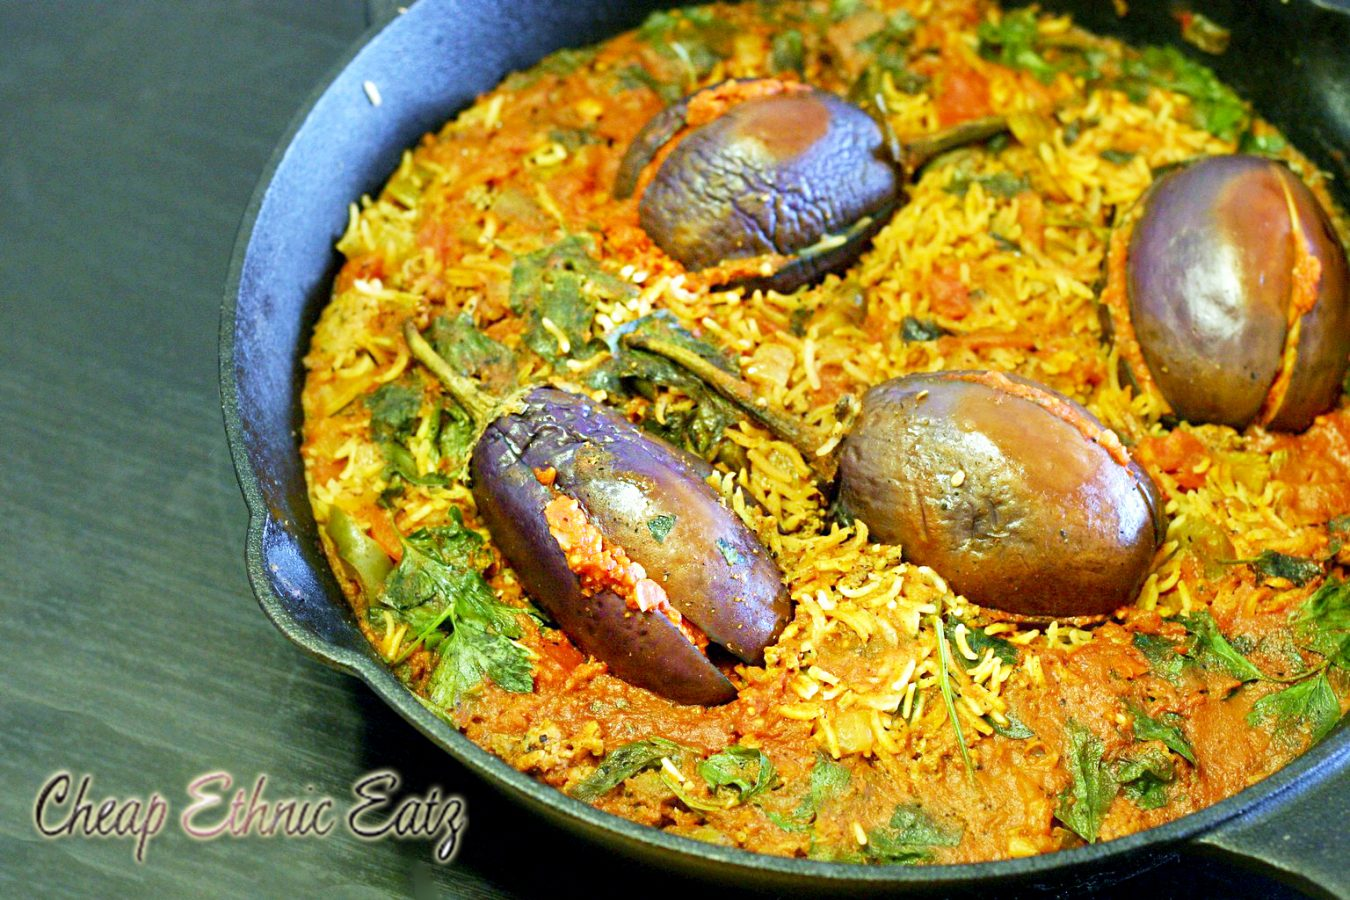 Stuffed Baby Eggplants in a Dirty Rice Pilaf 02